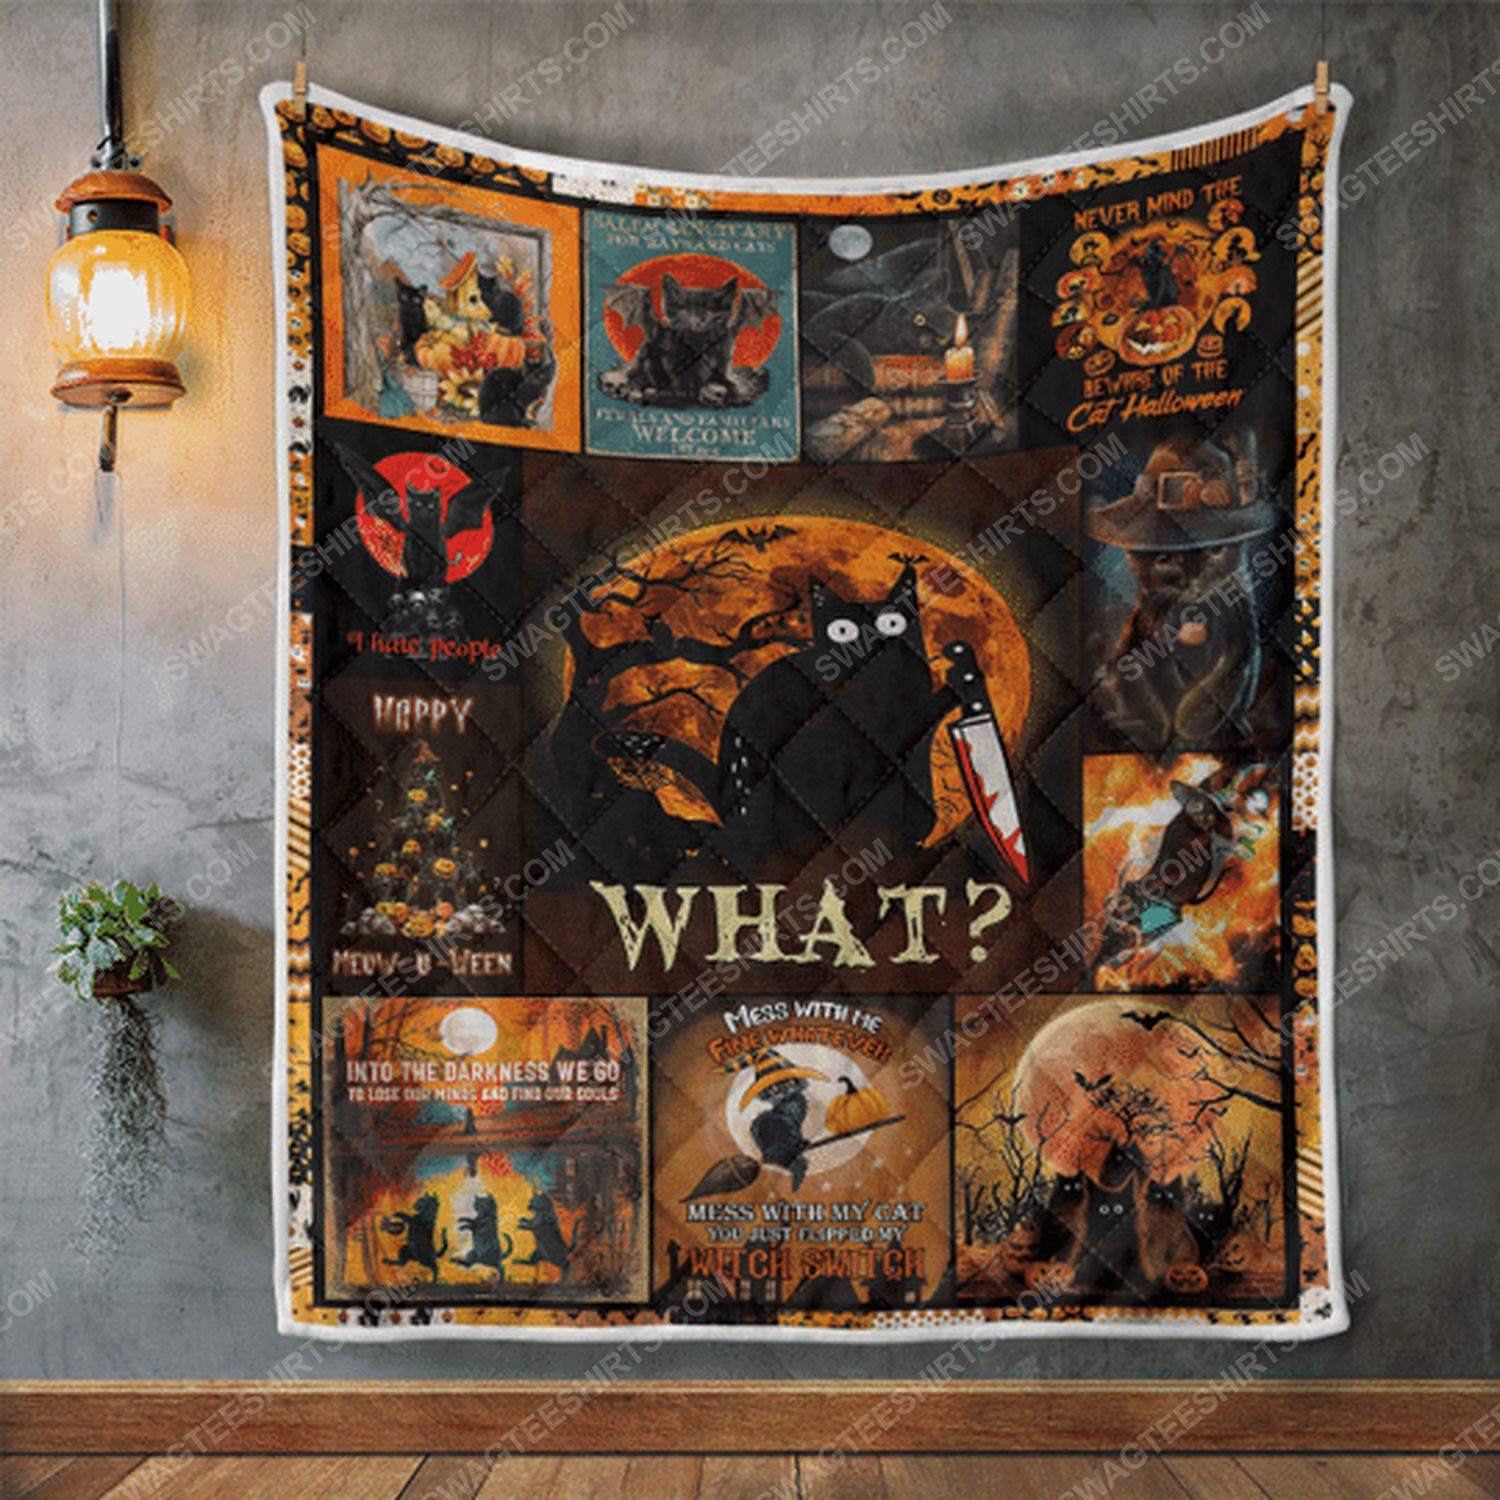 Black cat with knife what halloween blanket 2